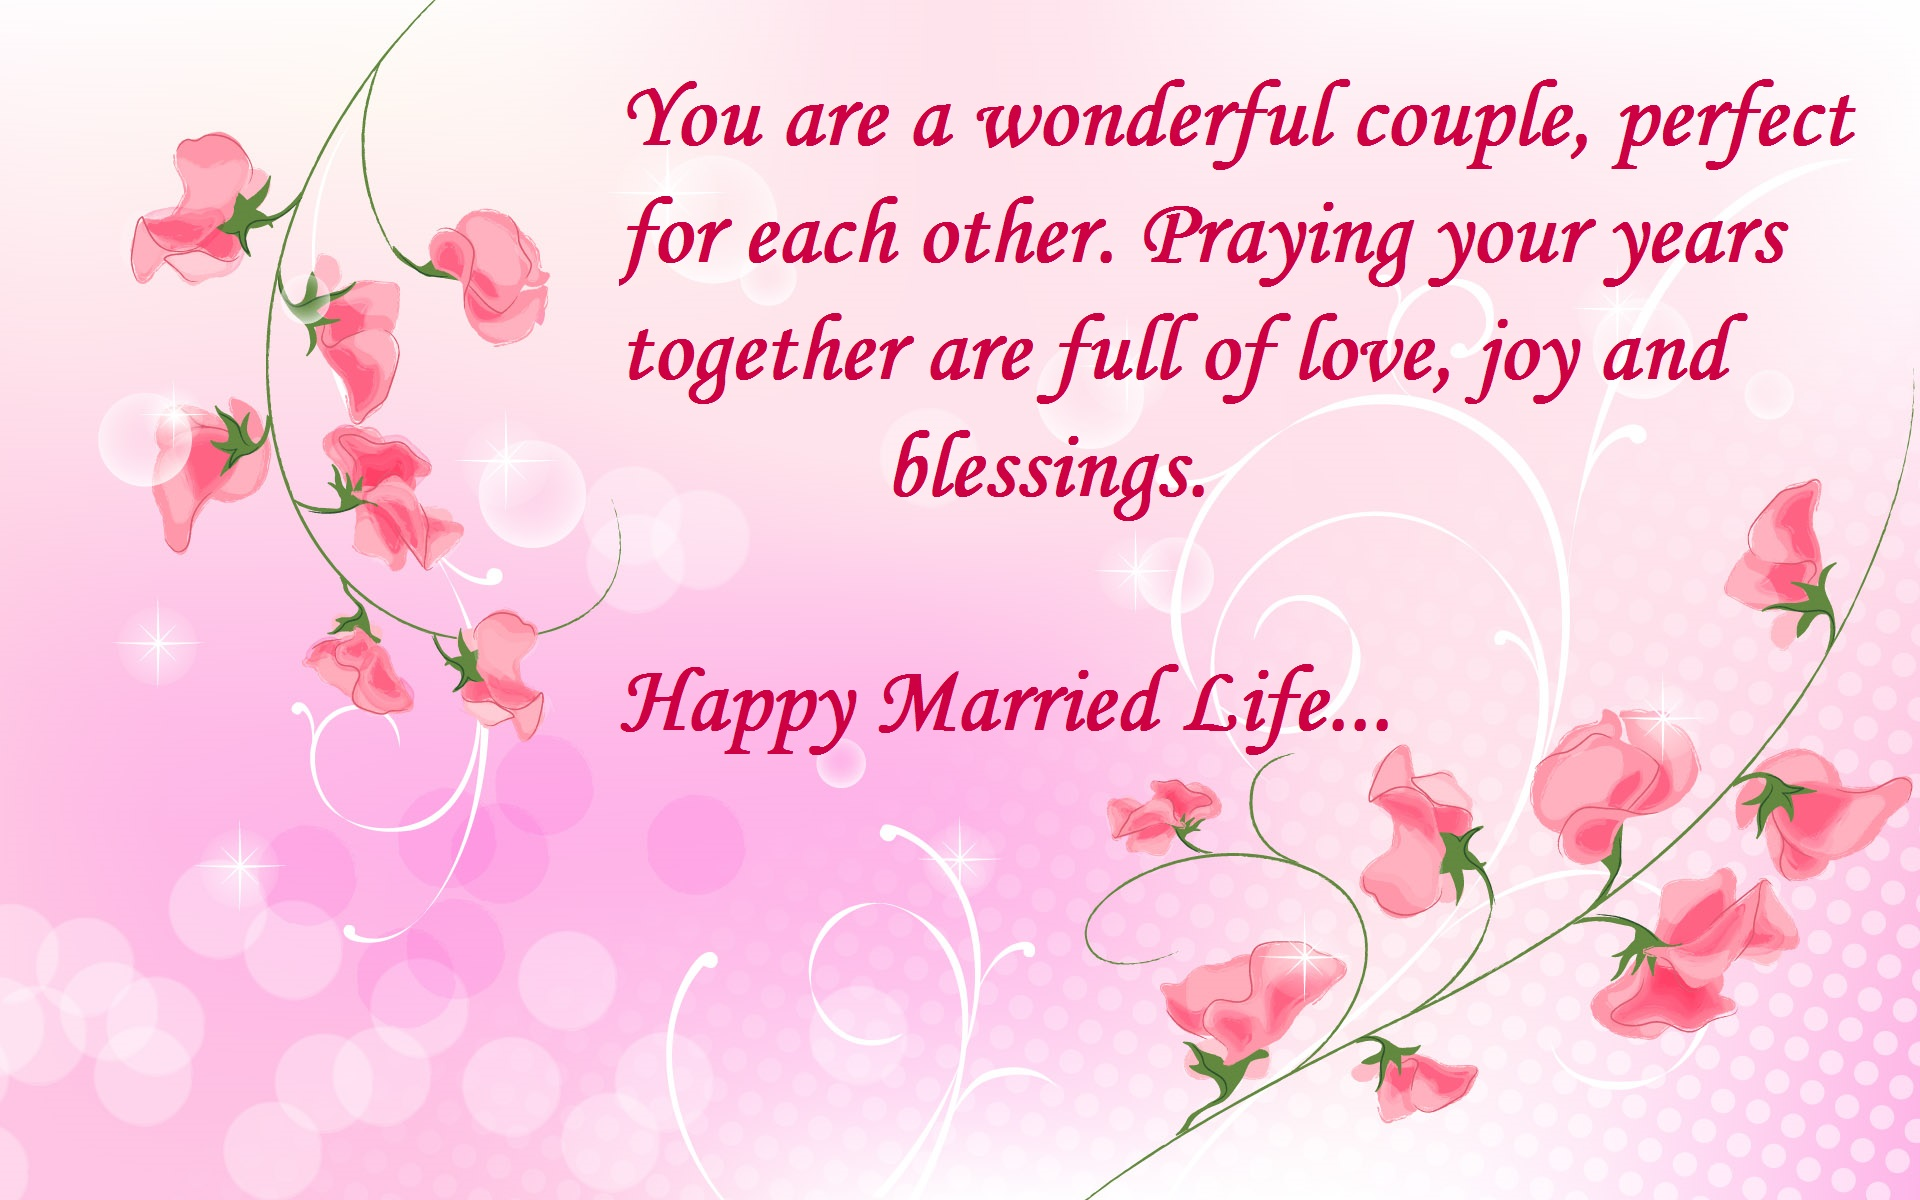 Beautiful wedding wishes 2017 hd images pictures free download m4hsunfo